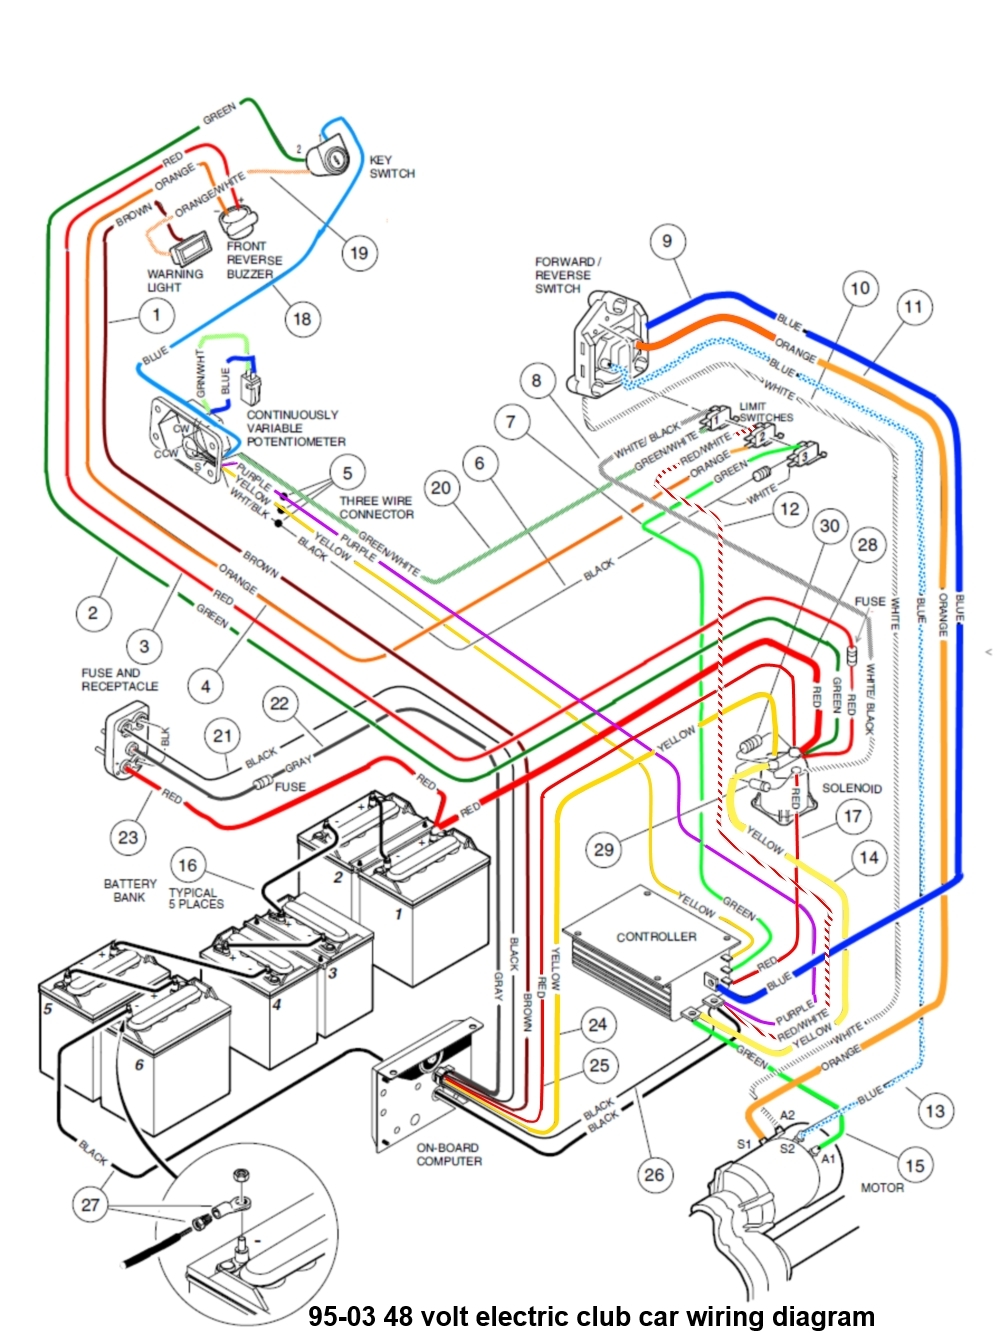 ingersoll rand club car wiring diagram and wiring diagram for 1999 pertaining to club car golf cart parts diagram ingersoll rand club car wiring diagram and wiring diagram for 1999 ingersoll rand wiring diagrams at bayanpartner.co